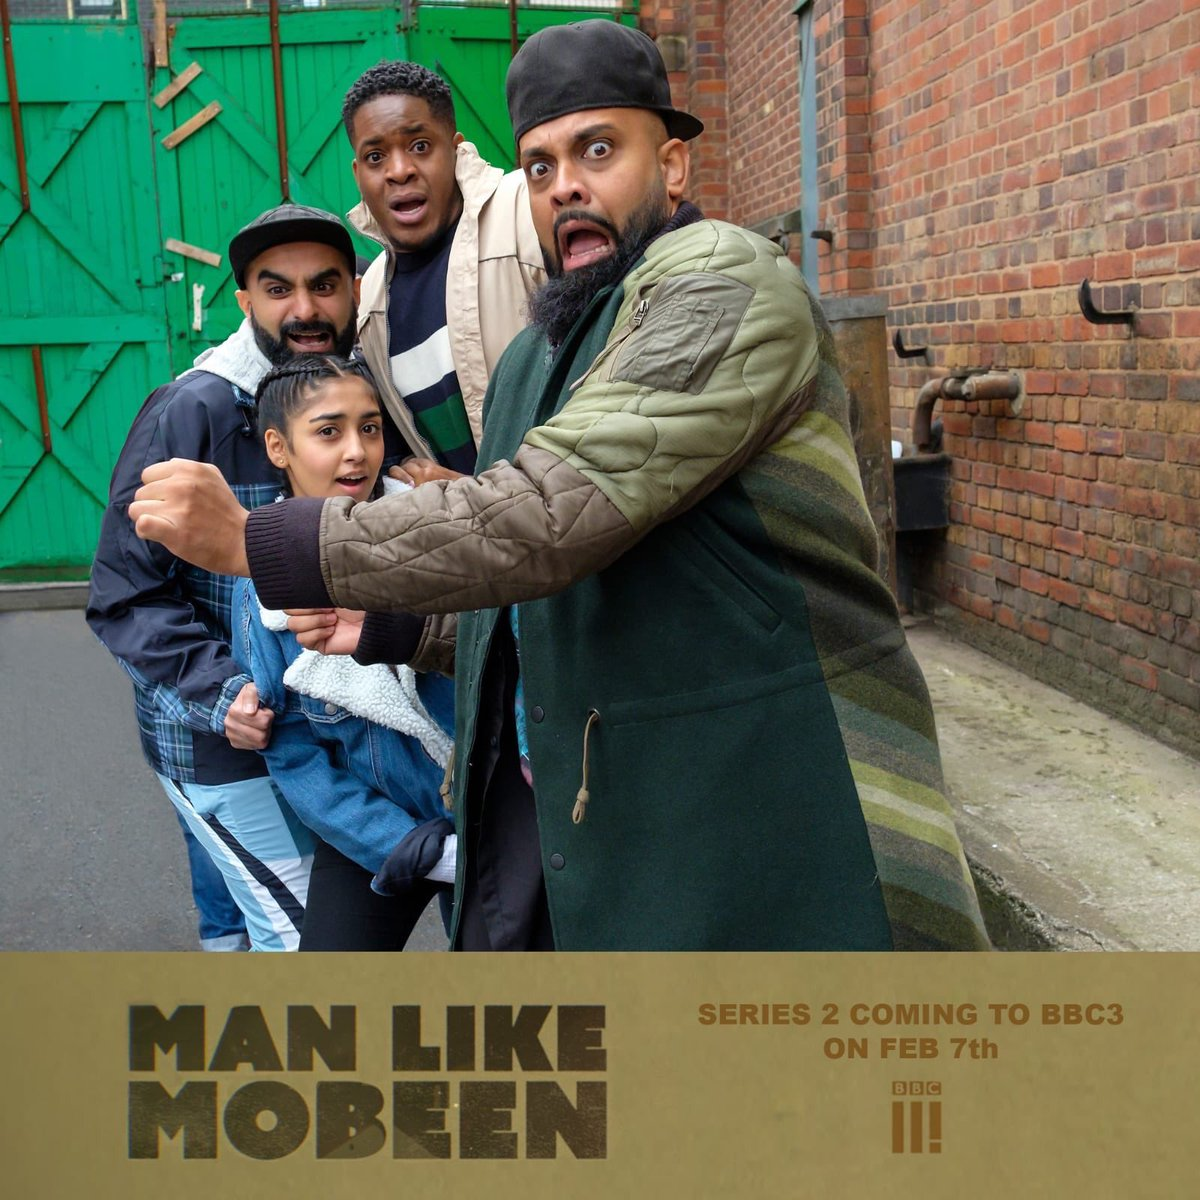 Man Like Mobeen series 2: What's in store